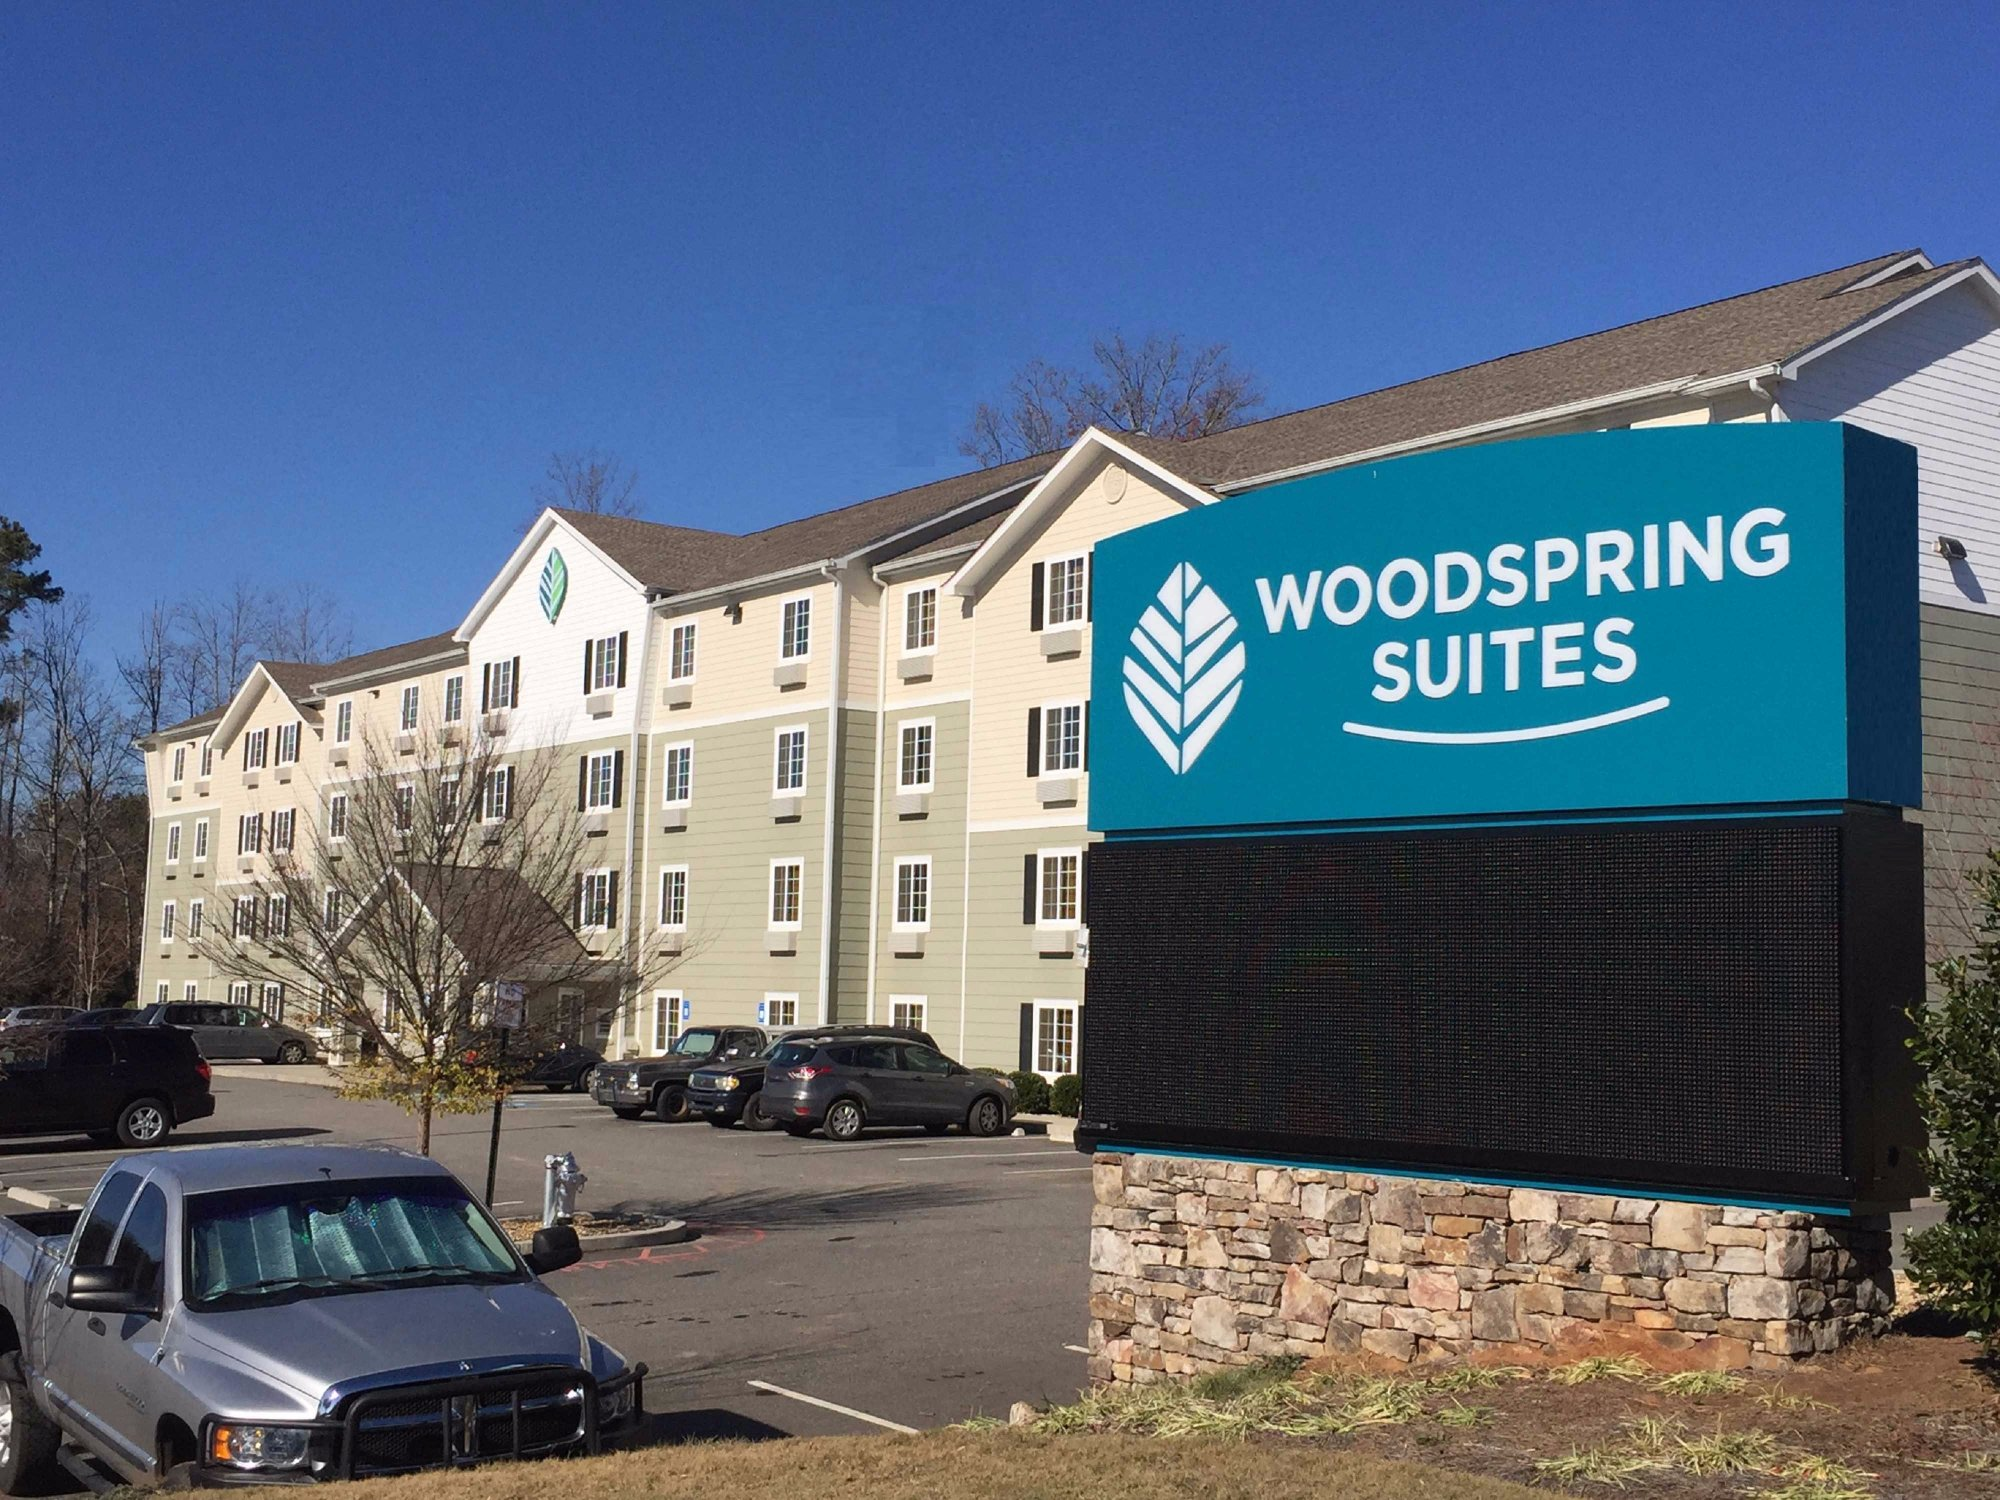 WoodSpring Suites Atlanta Alpharetta